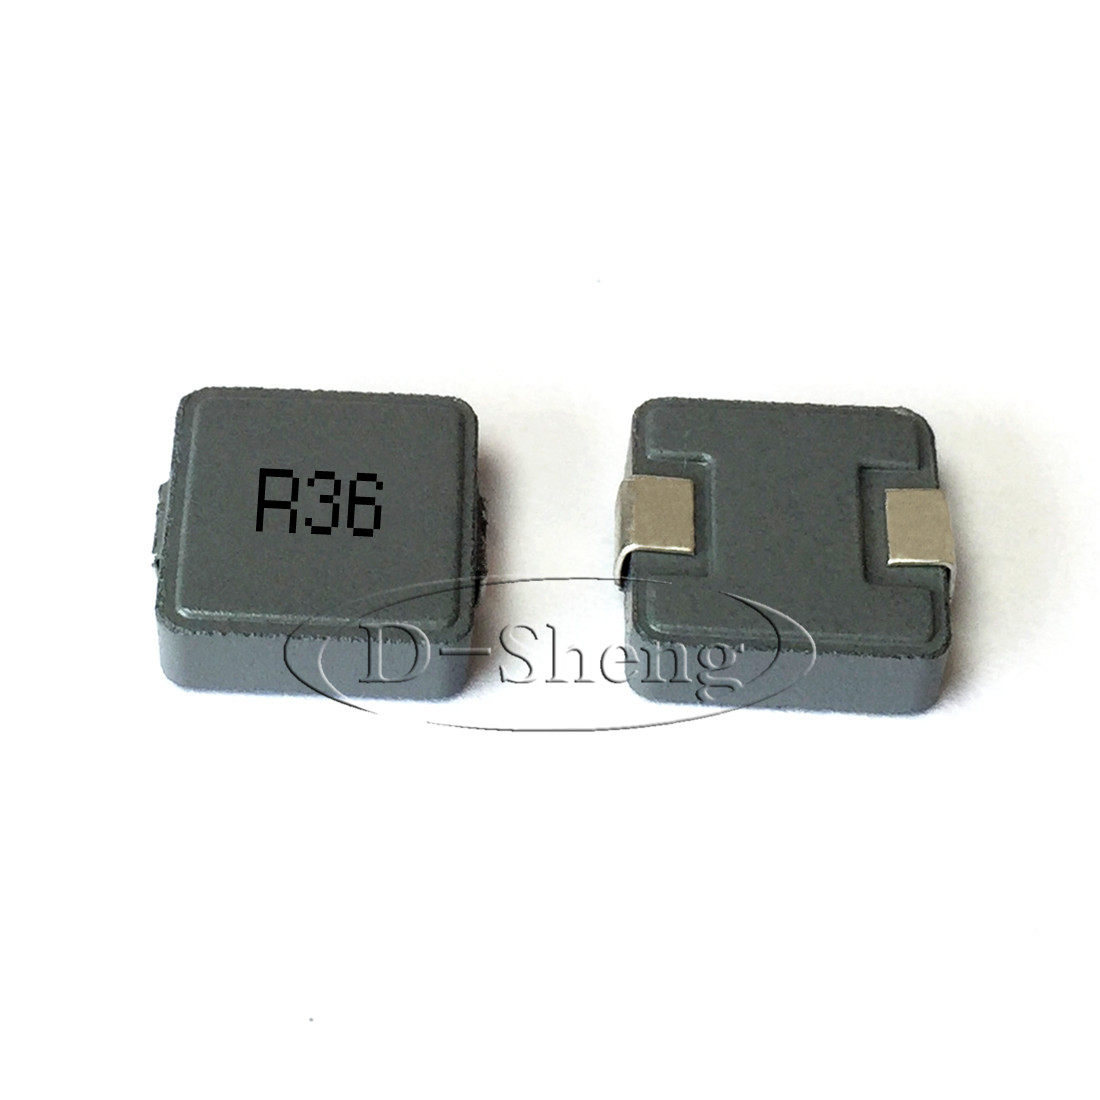 50pcs C2012C-47NH 47nH Chip Inductor SMD-0805